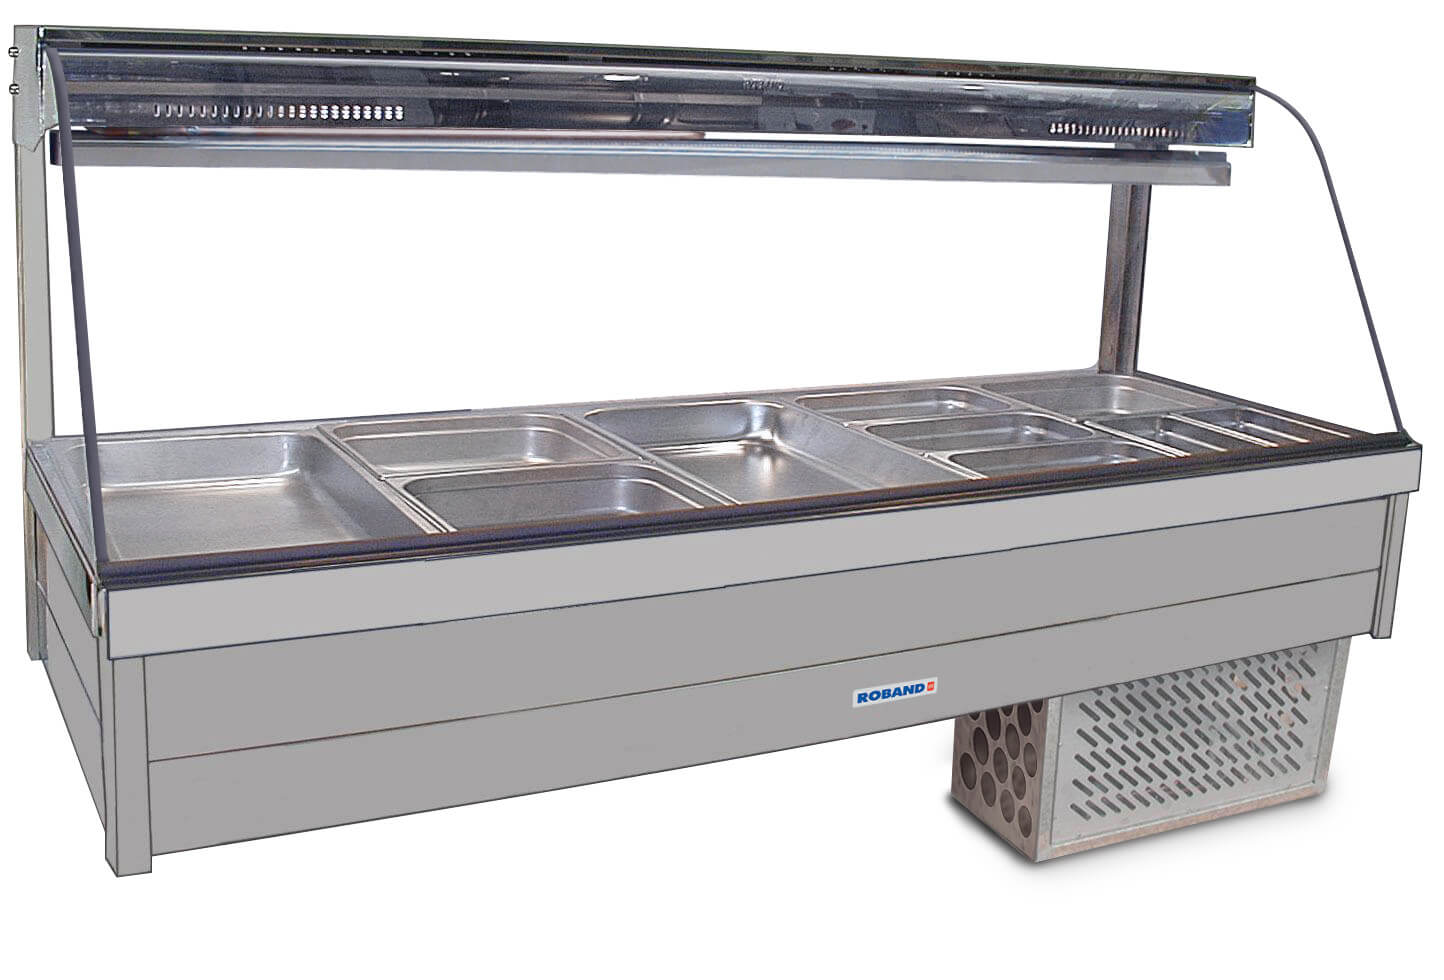 Roband Curved Glass Refrigerated Display Bar - Piped and Foamed only (no motor), 10 pans